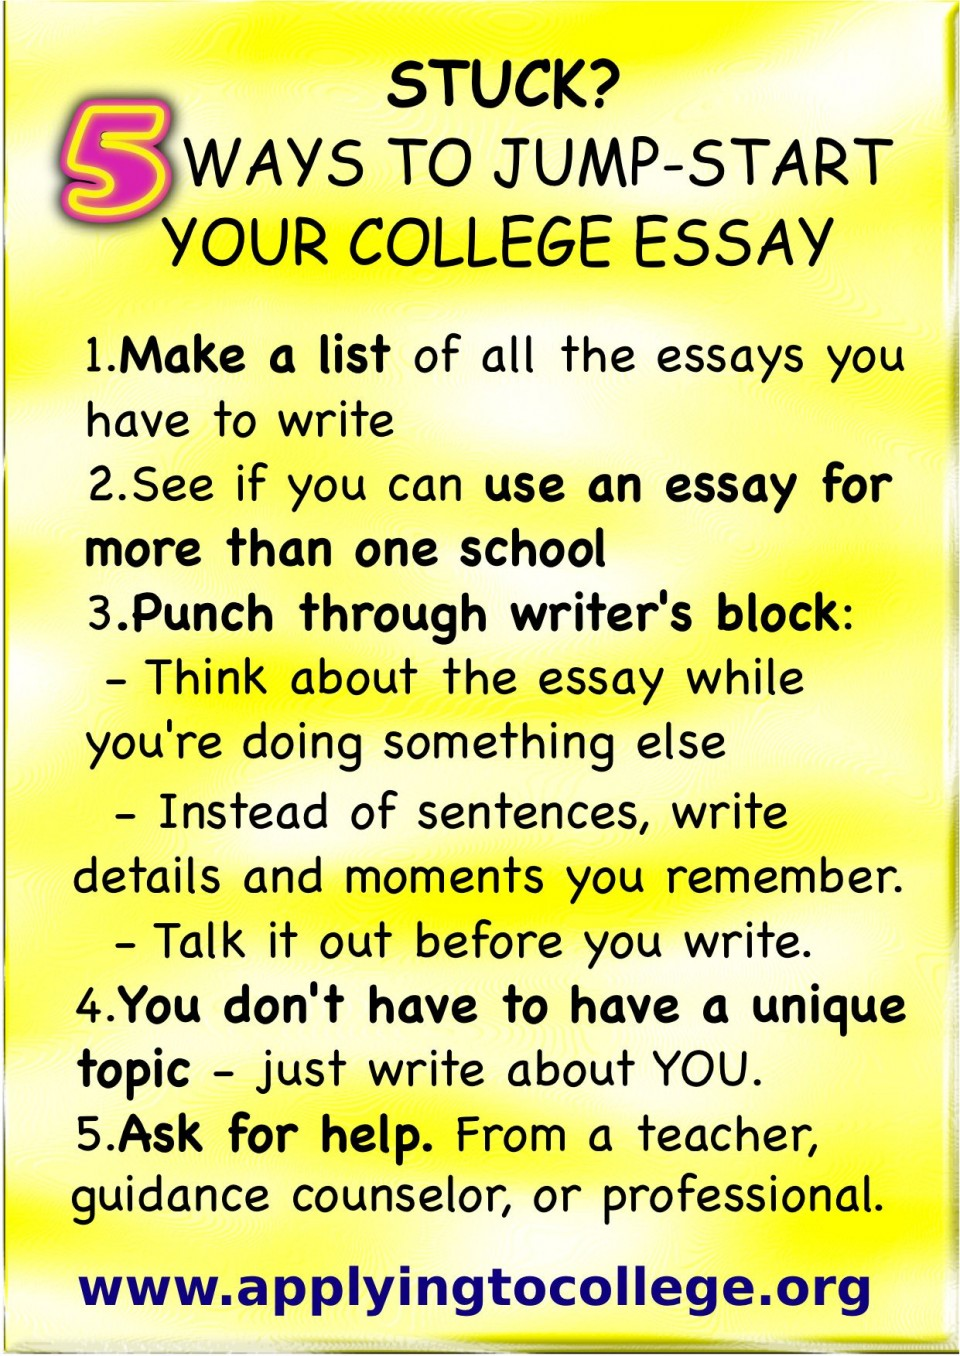 016 Essay Example Writing College Application Rare A Topics To Write On Tips For About Yourself 960